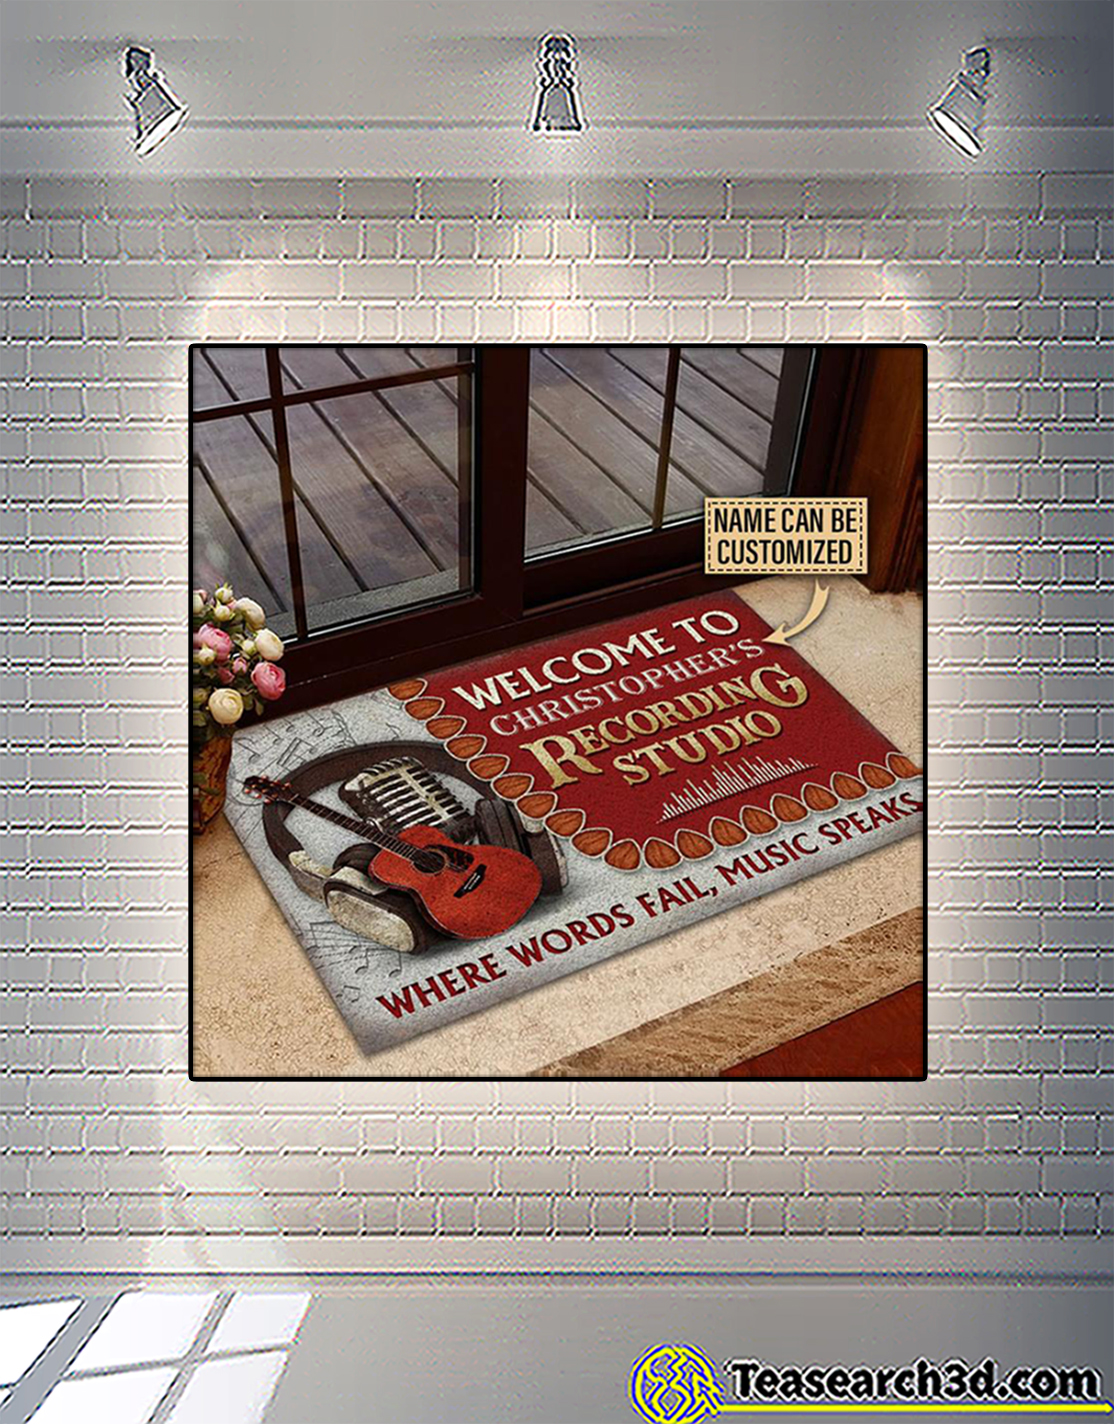 Personalized custom name acoustic guitar welcome to recording studio doormat